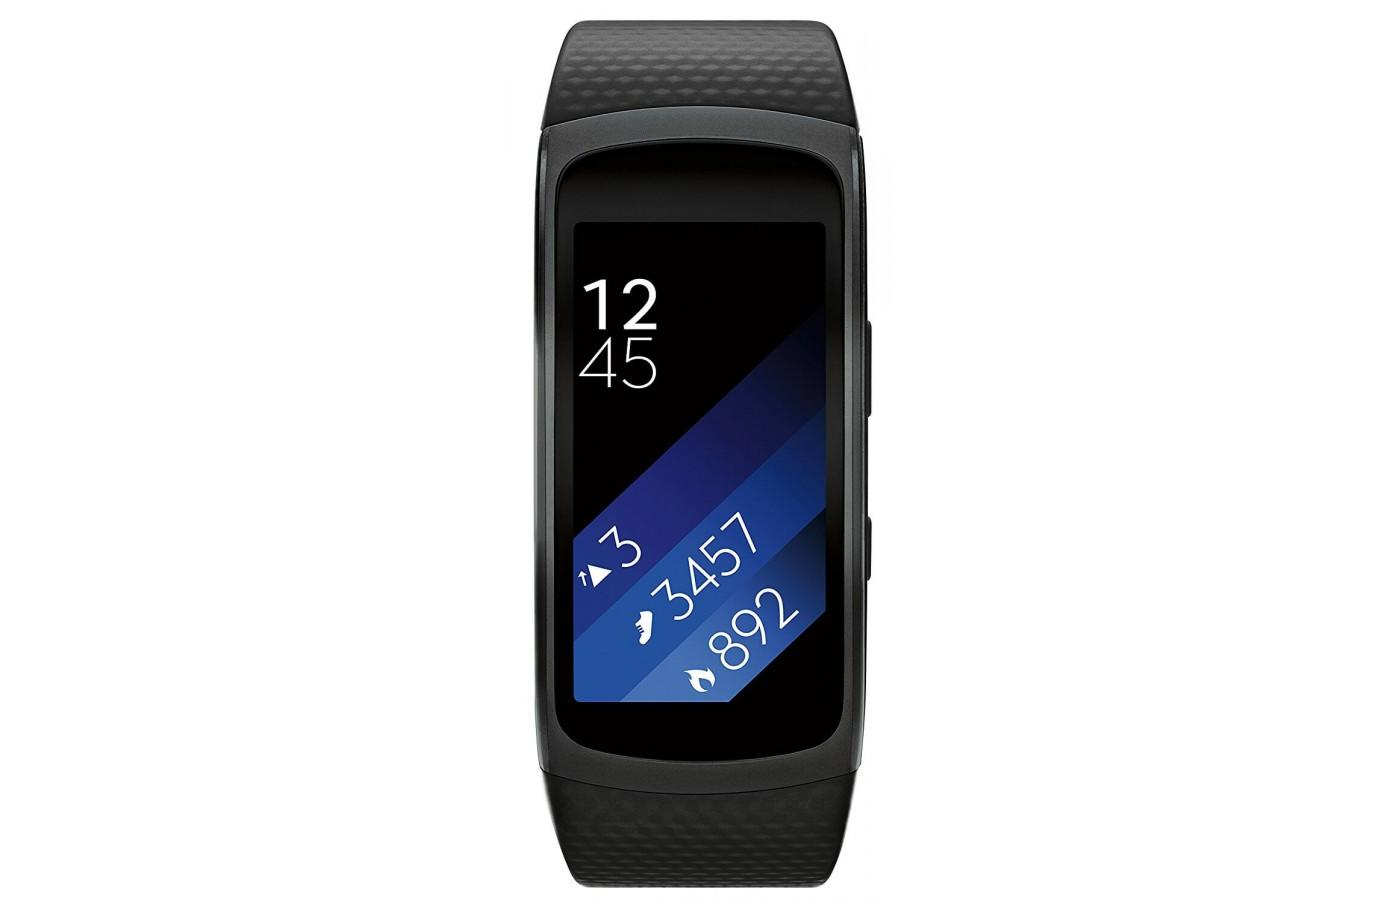 the Samsung Gear Fit2 has a curved full-color touch screen